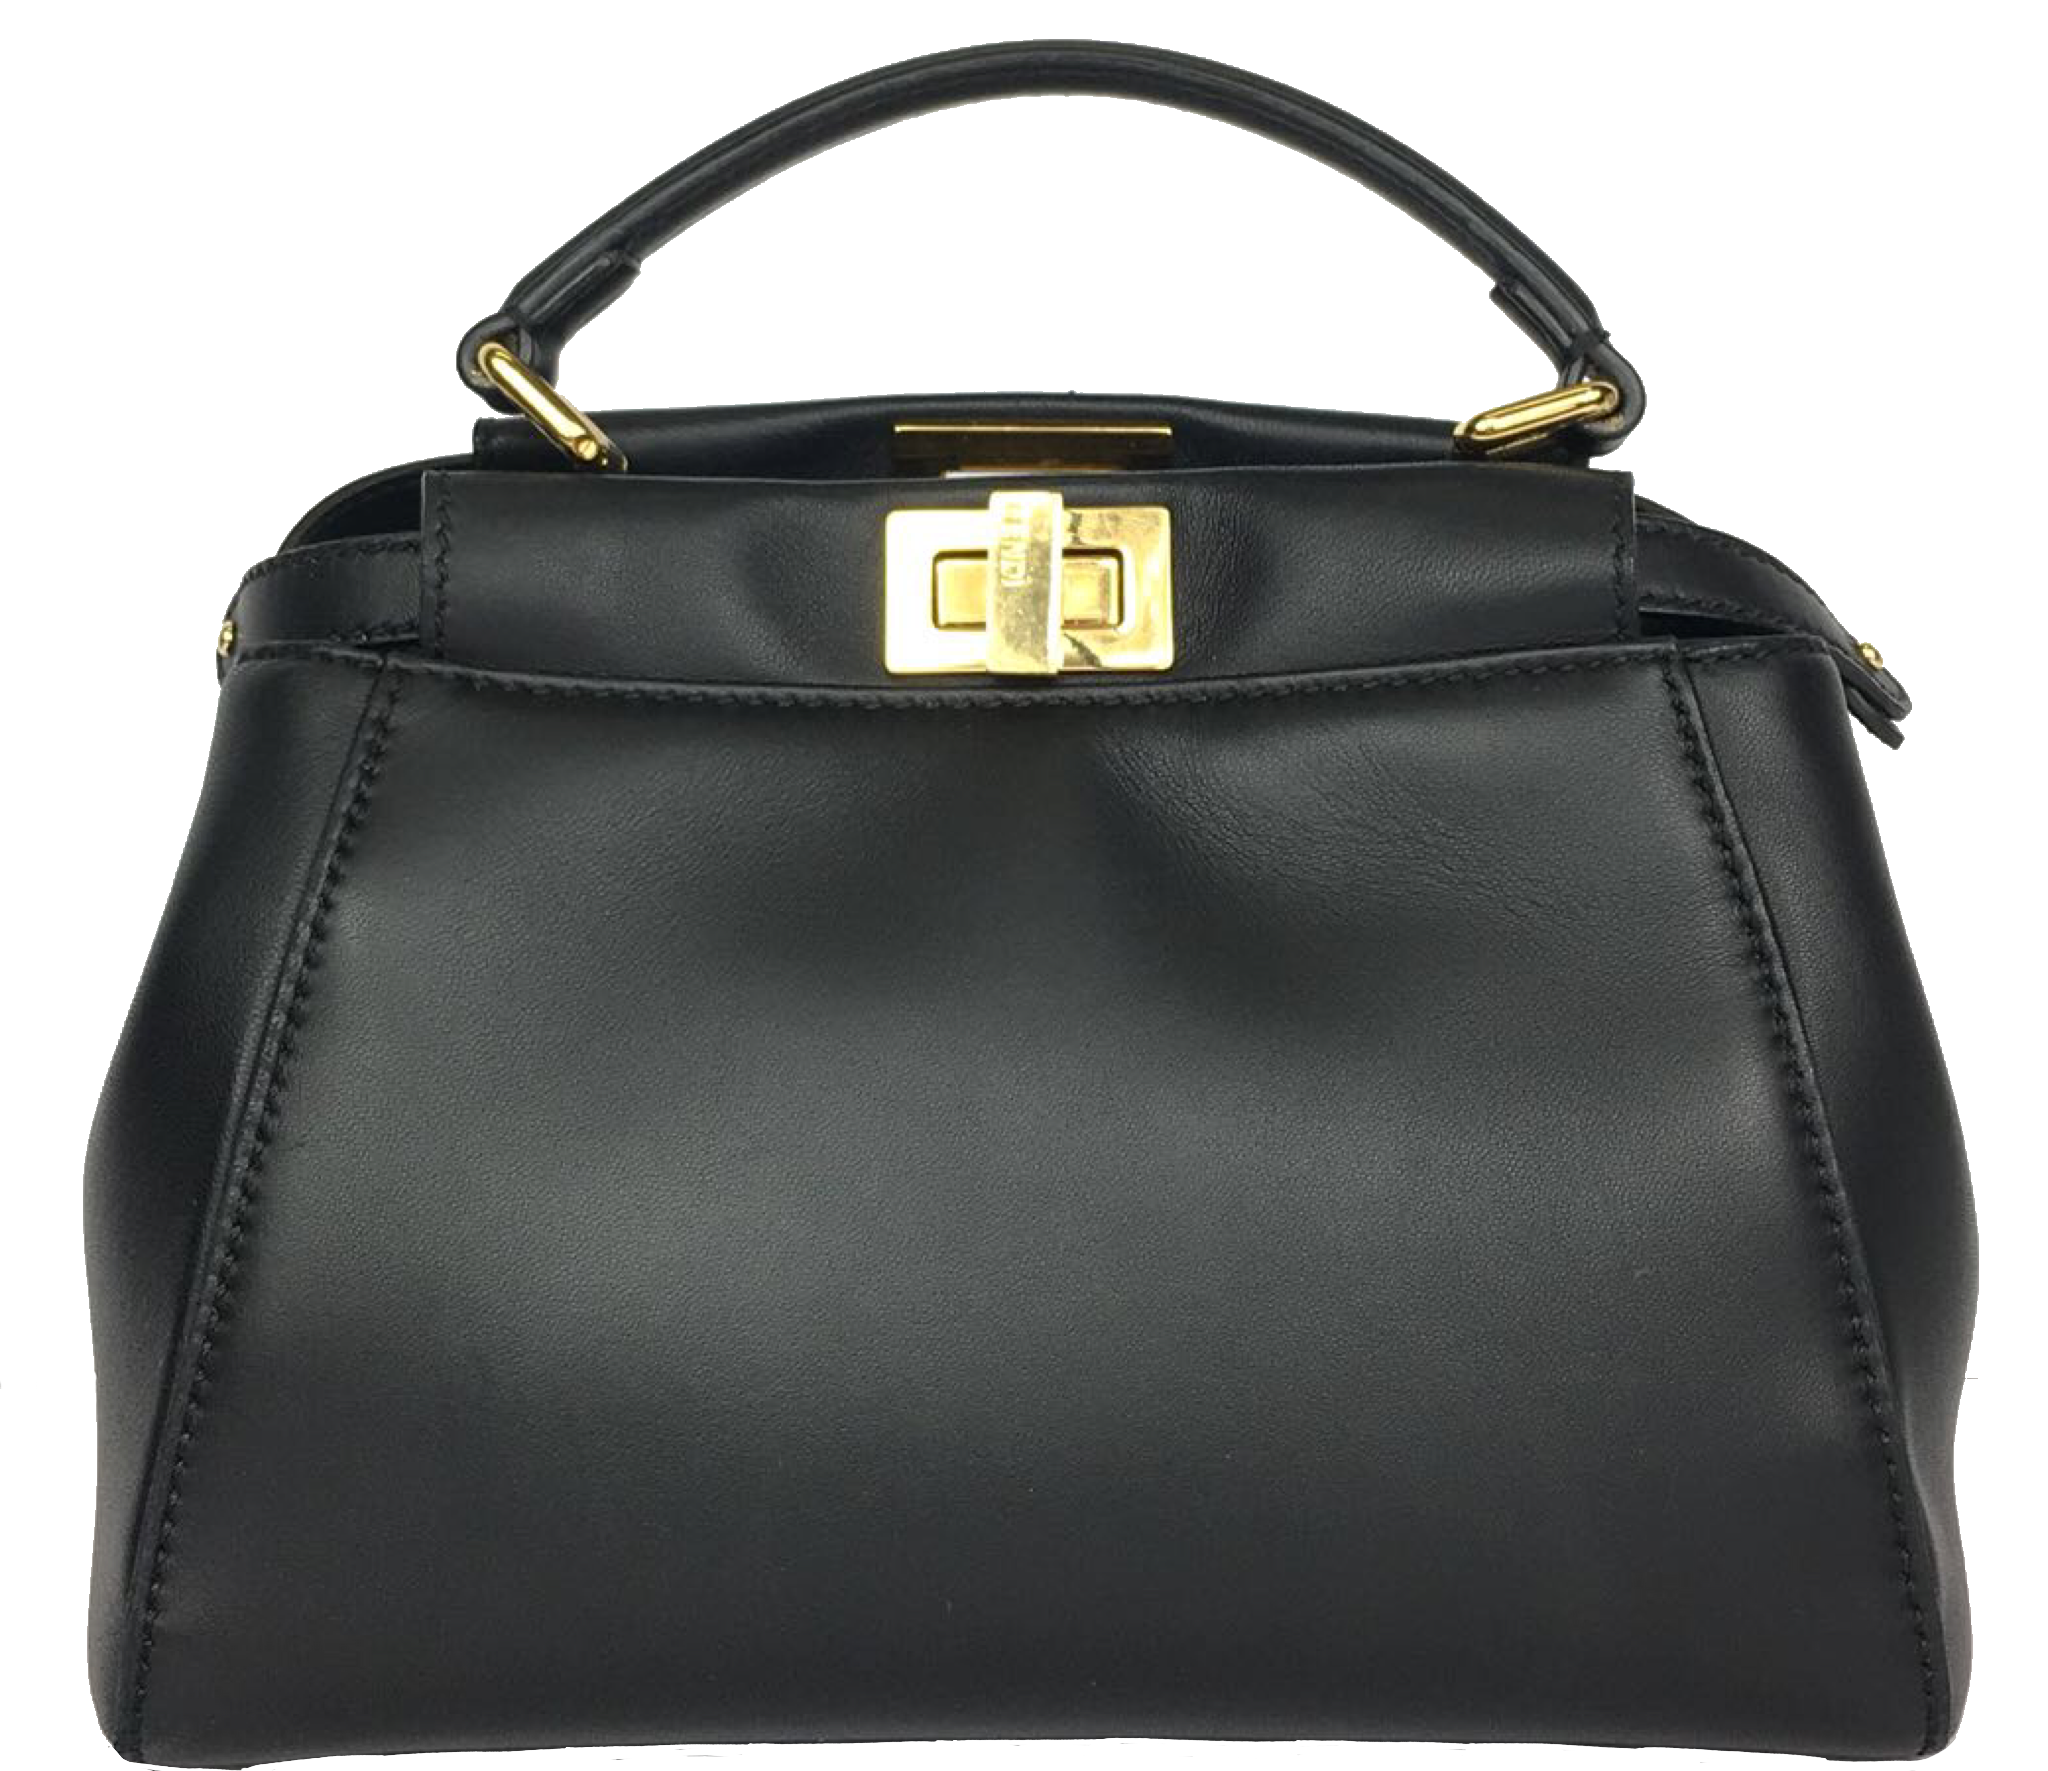 Small Dustbag Designed for Fendi Handbags